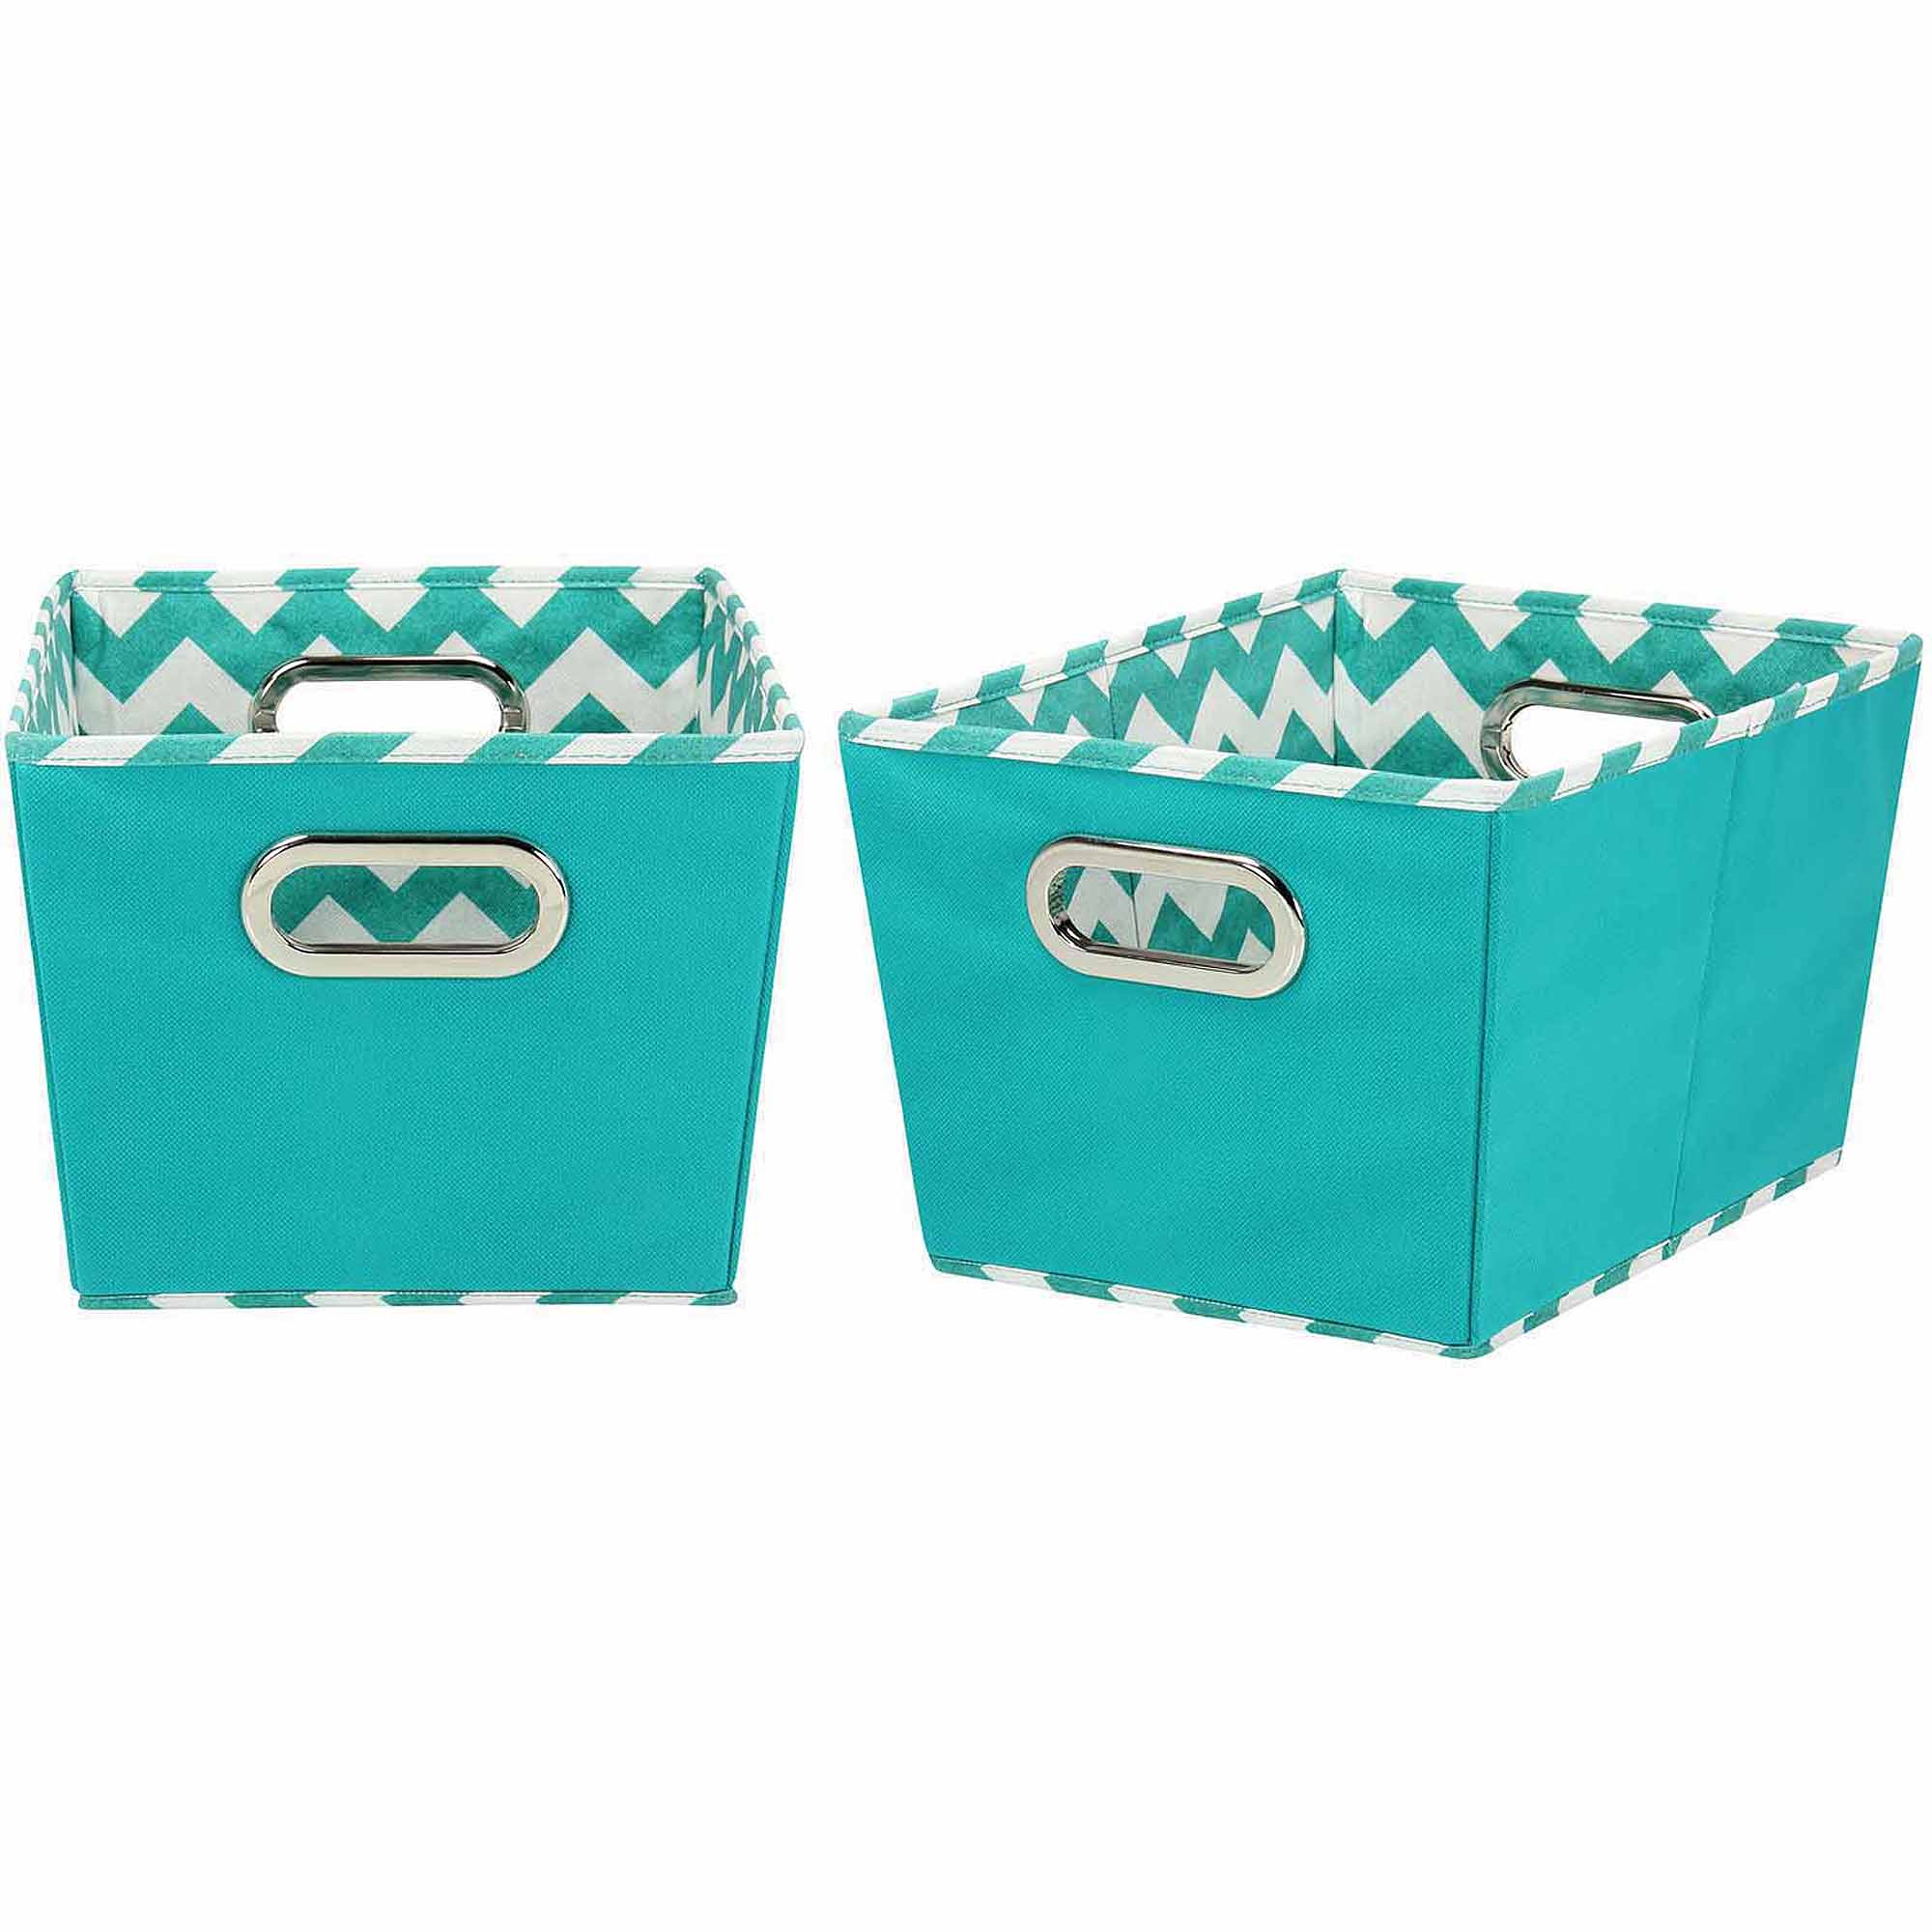 Household Essentials Small Decorative Storage Bins, 2pk, Aqua and Chevron by Household Essentials